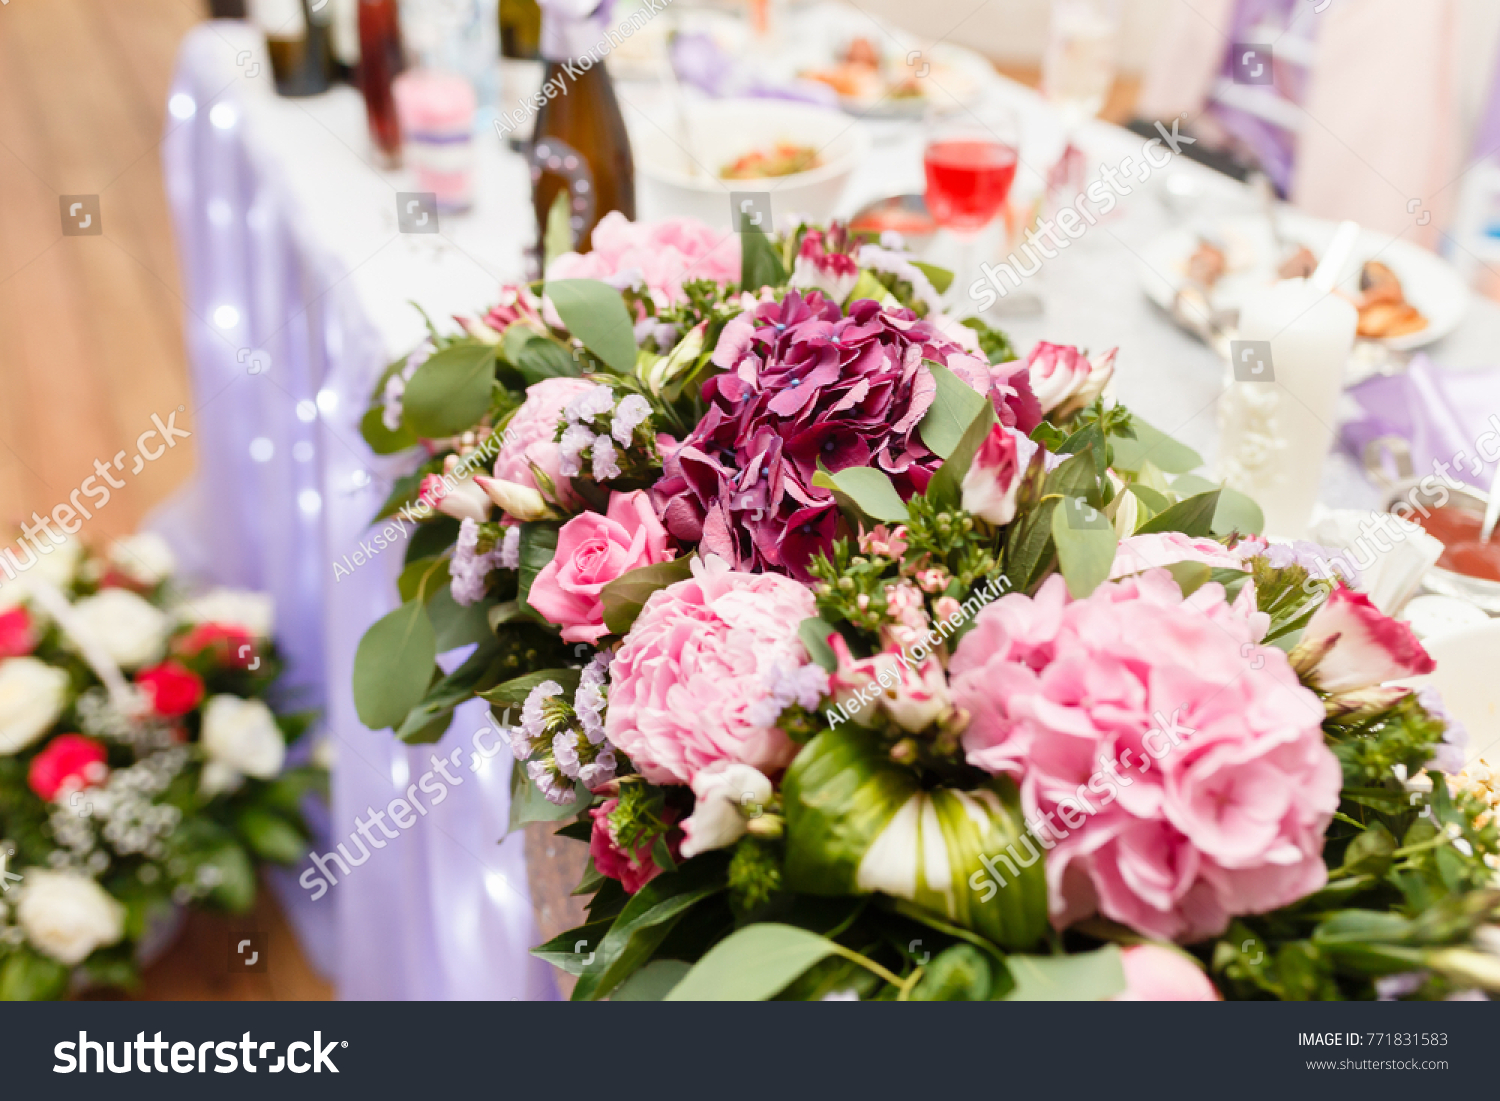 Decoration Bouquet Flowers Table Newlyweds Indoors Stock Photo Edit